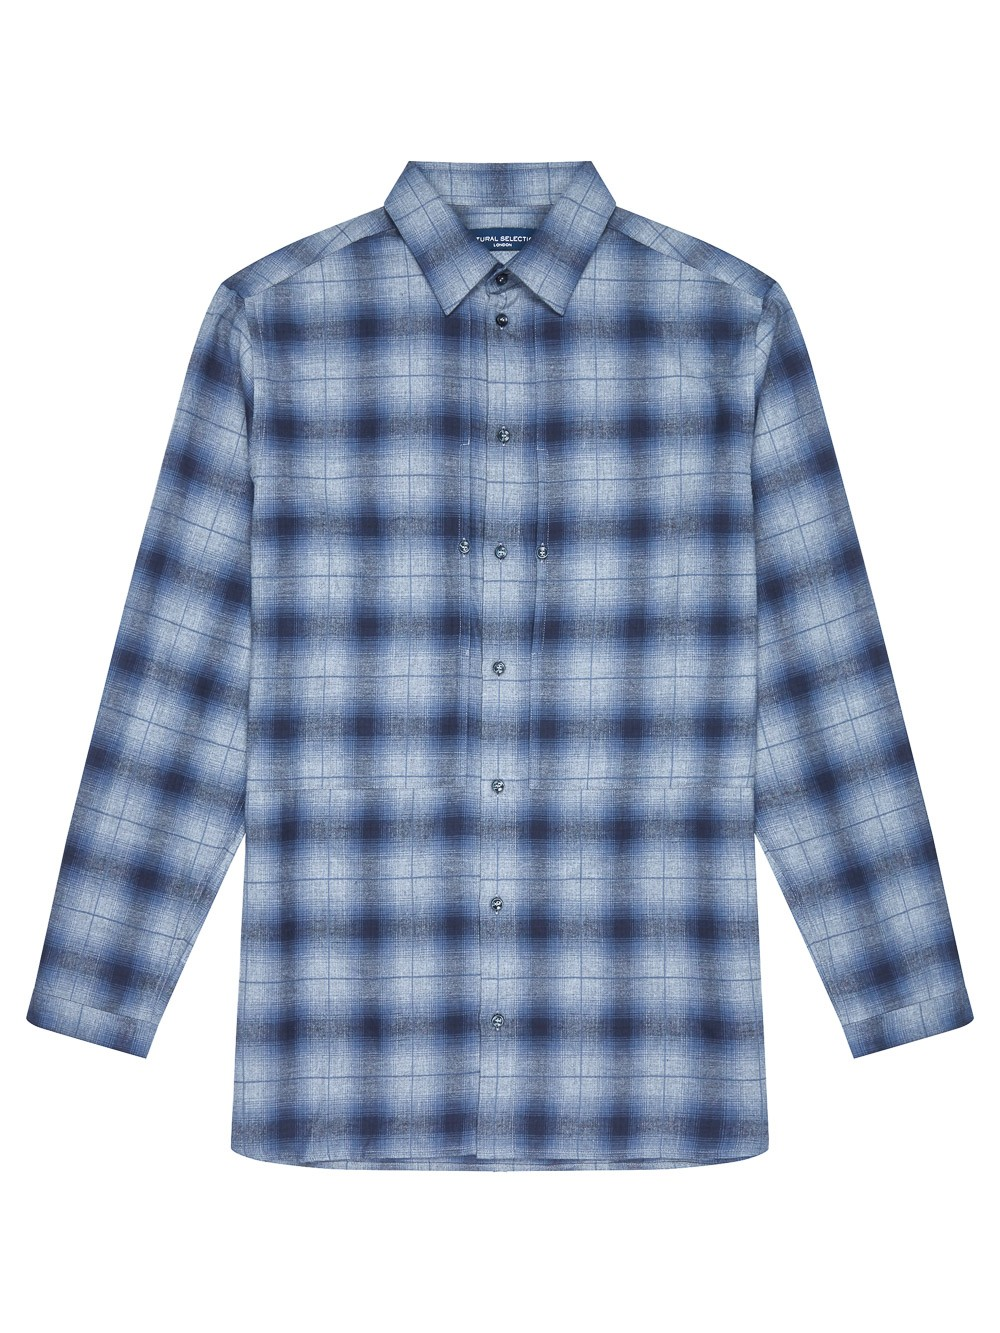 Natural Selection Leander Shirt Ombre Dusk